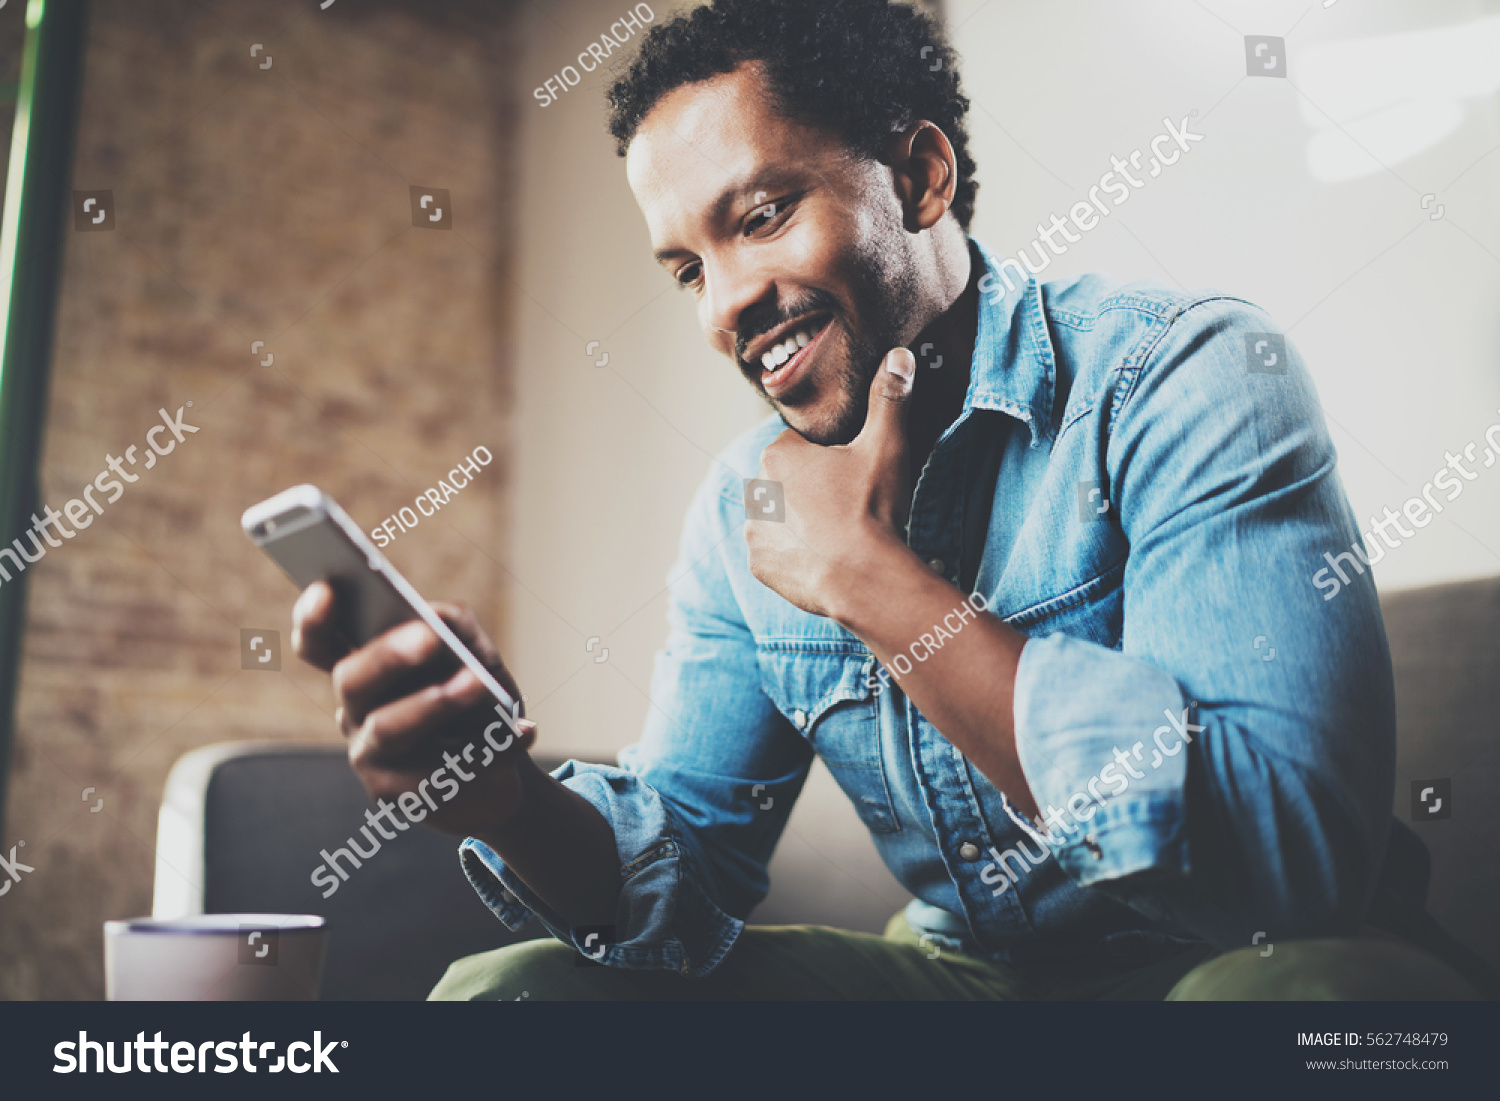 Happy bearded African businessman using phone while sitting on sofa at his modern home.Concept of young people working mobile devices.Blurred background #562748479